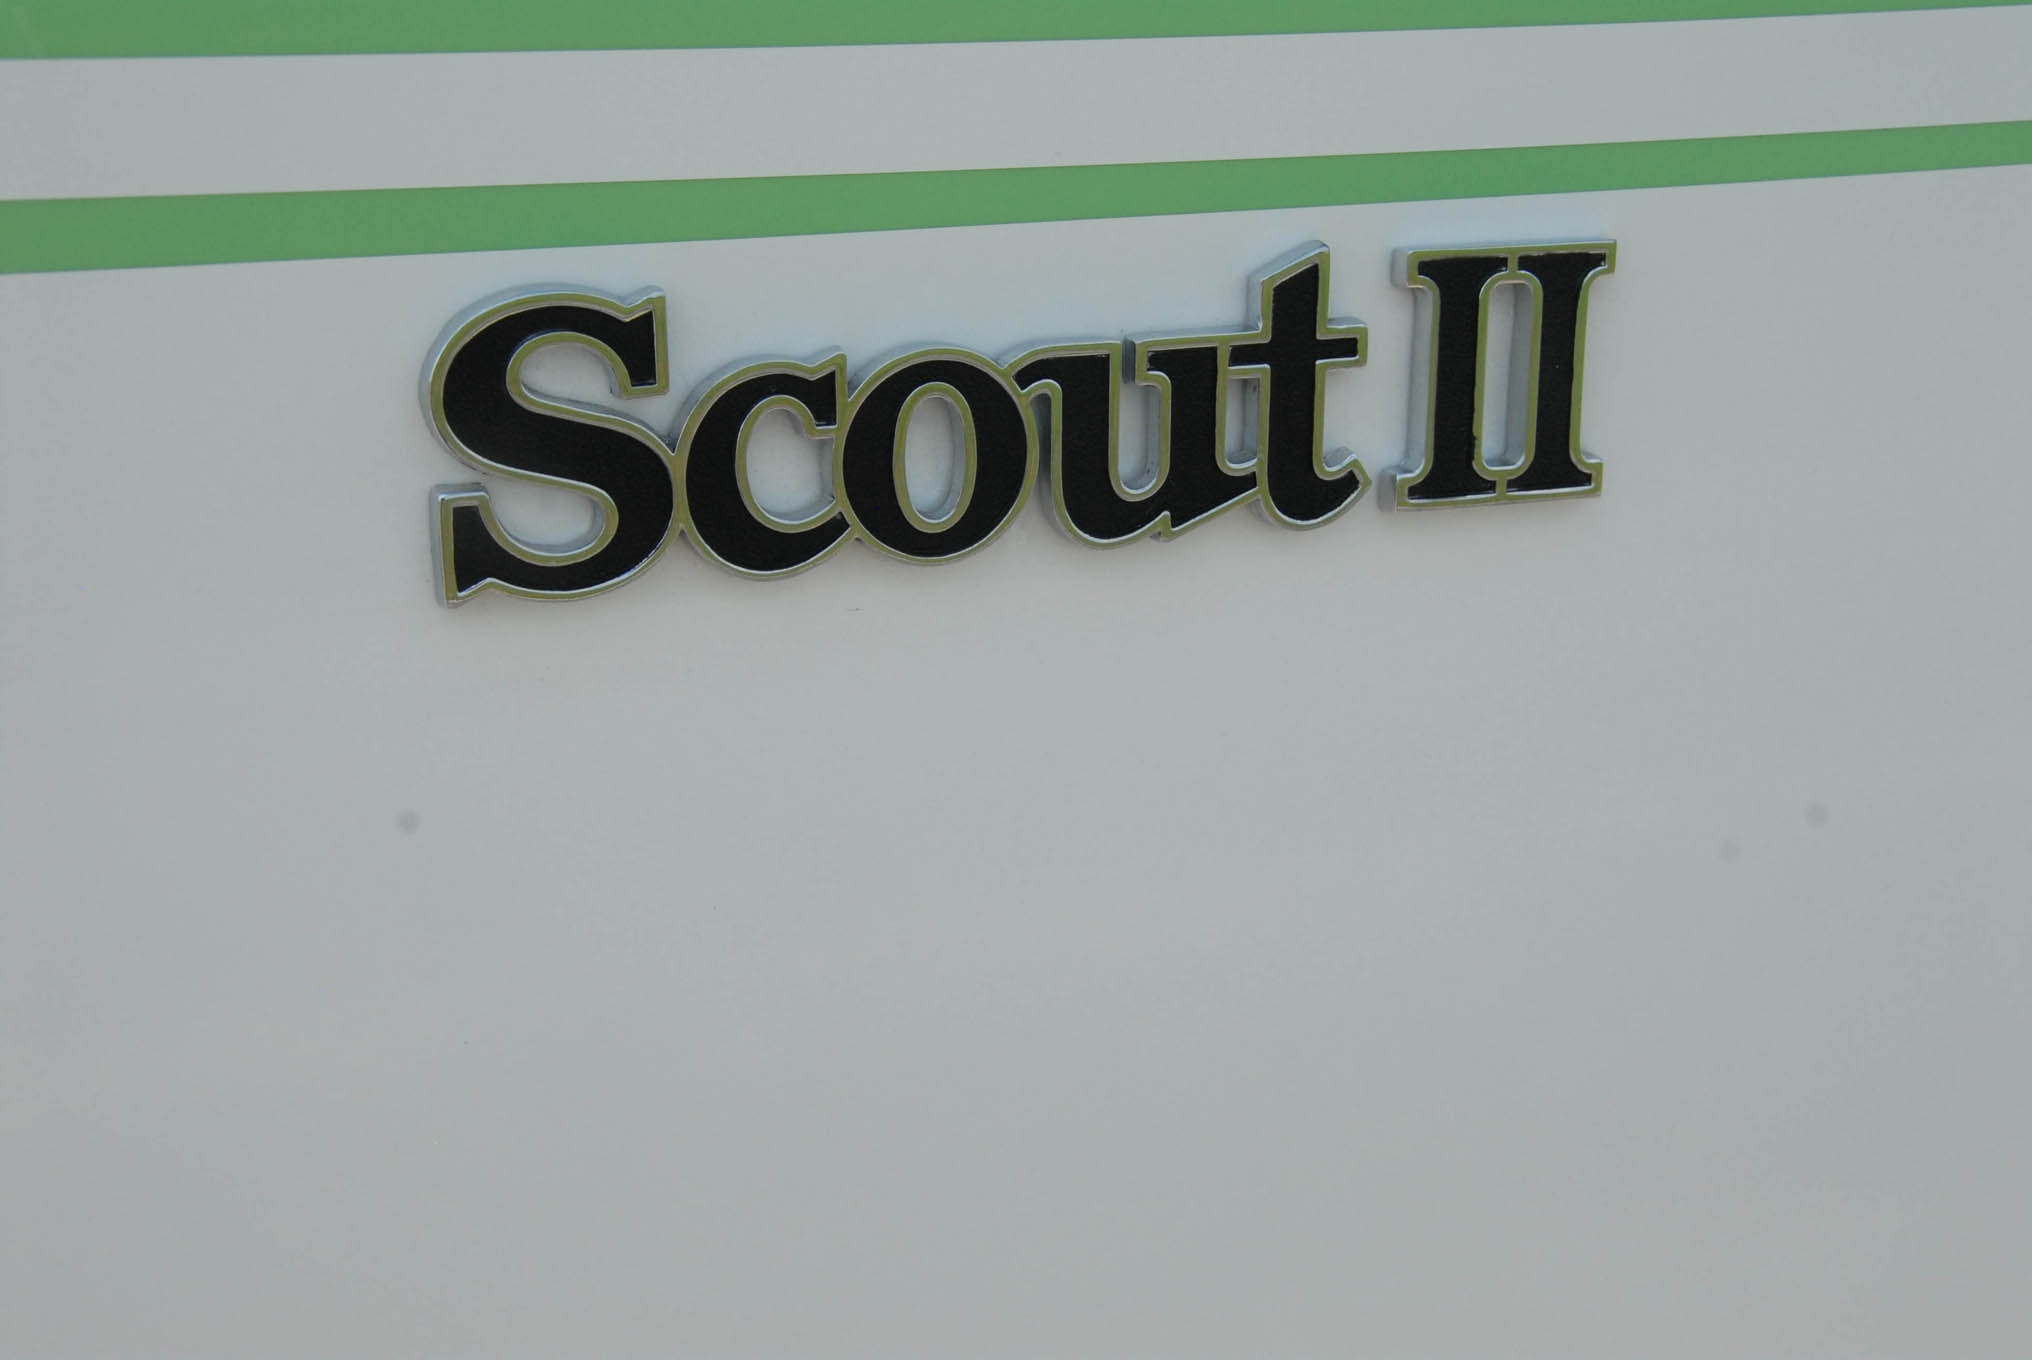 013 1979 scoutii scoutii badge detail